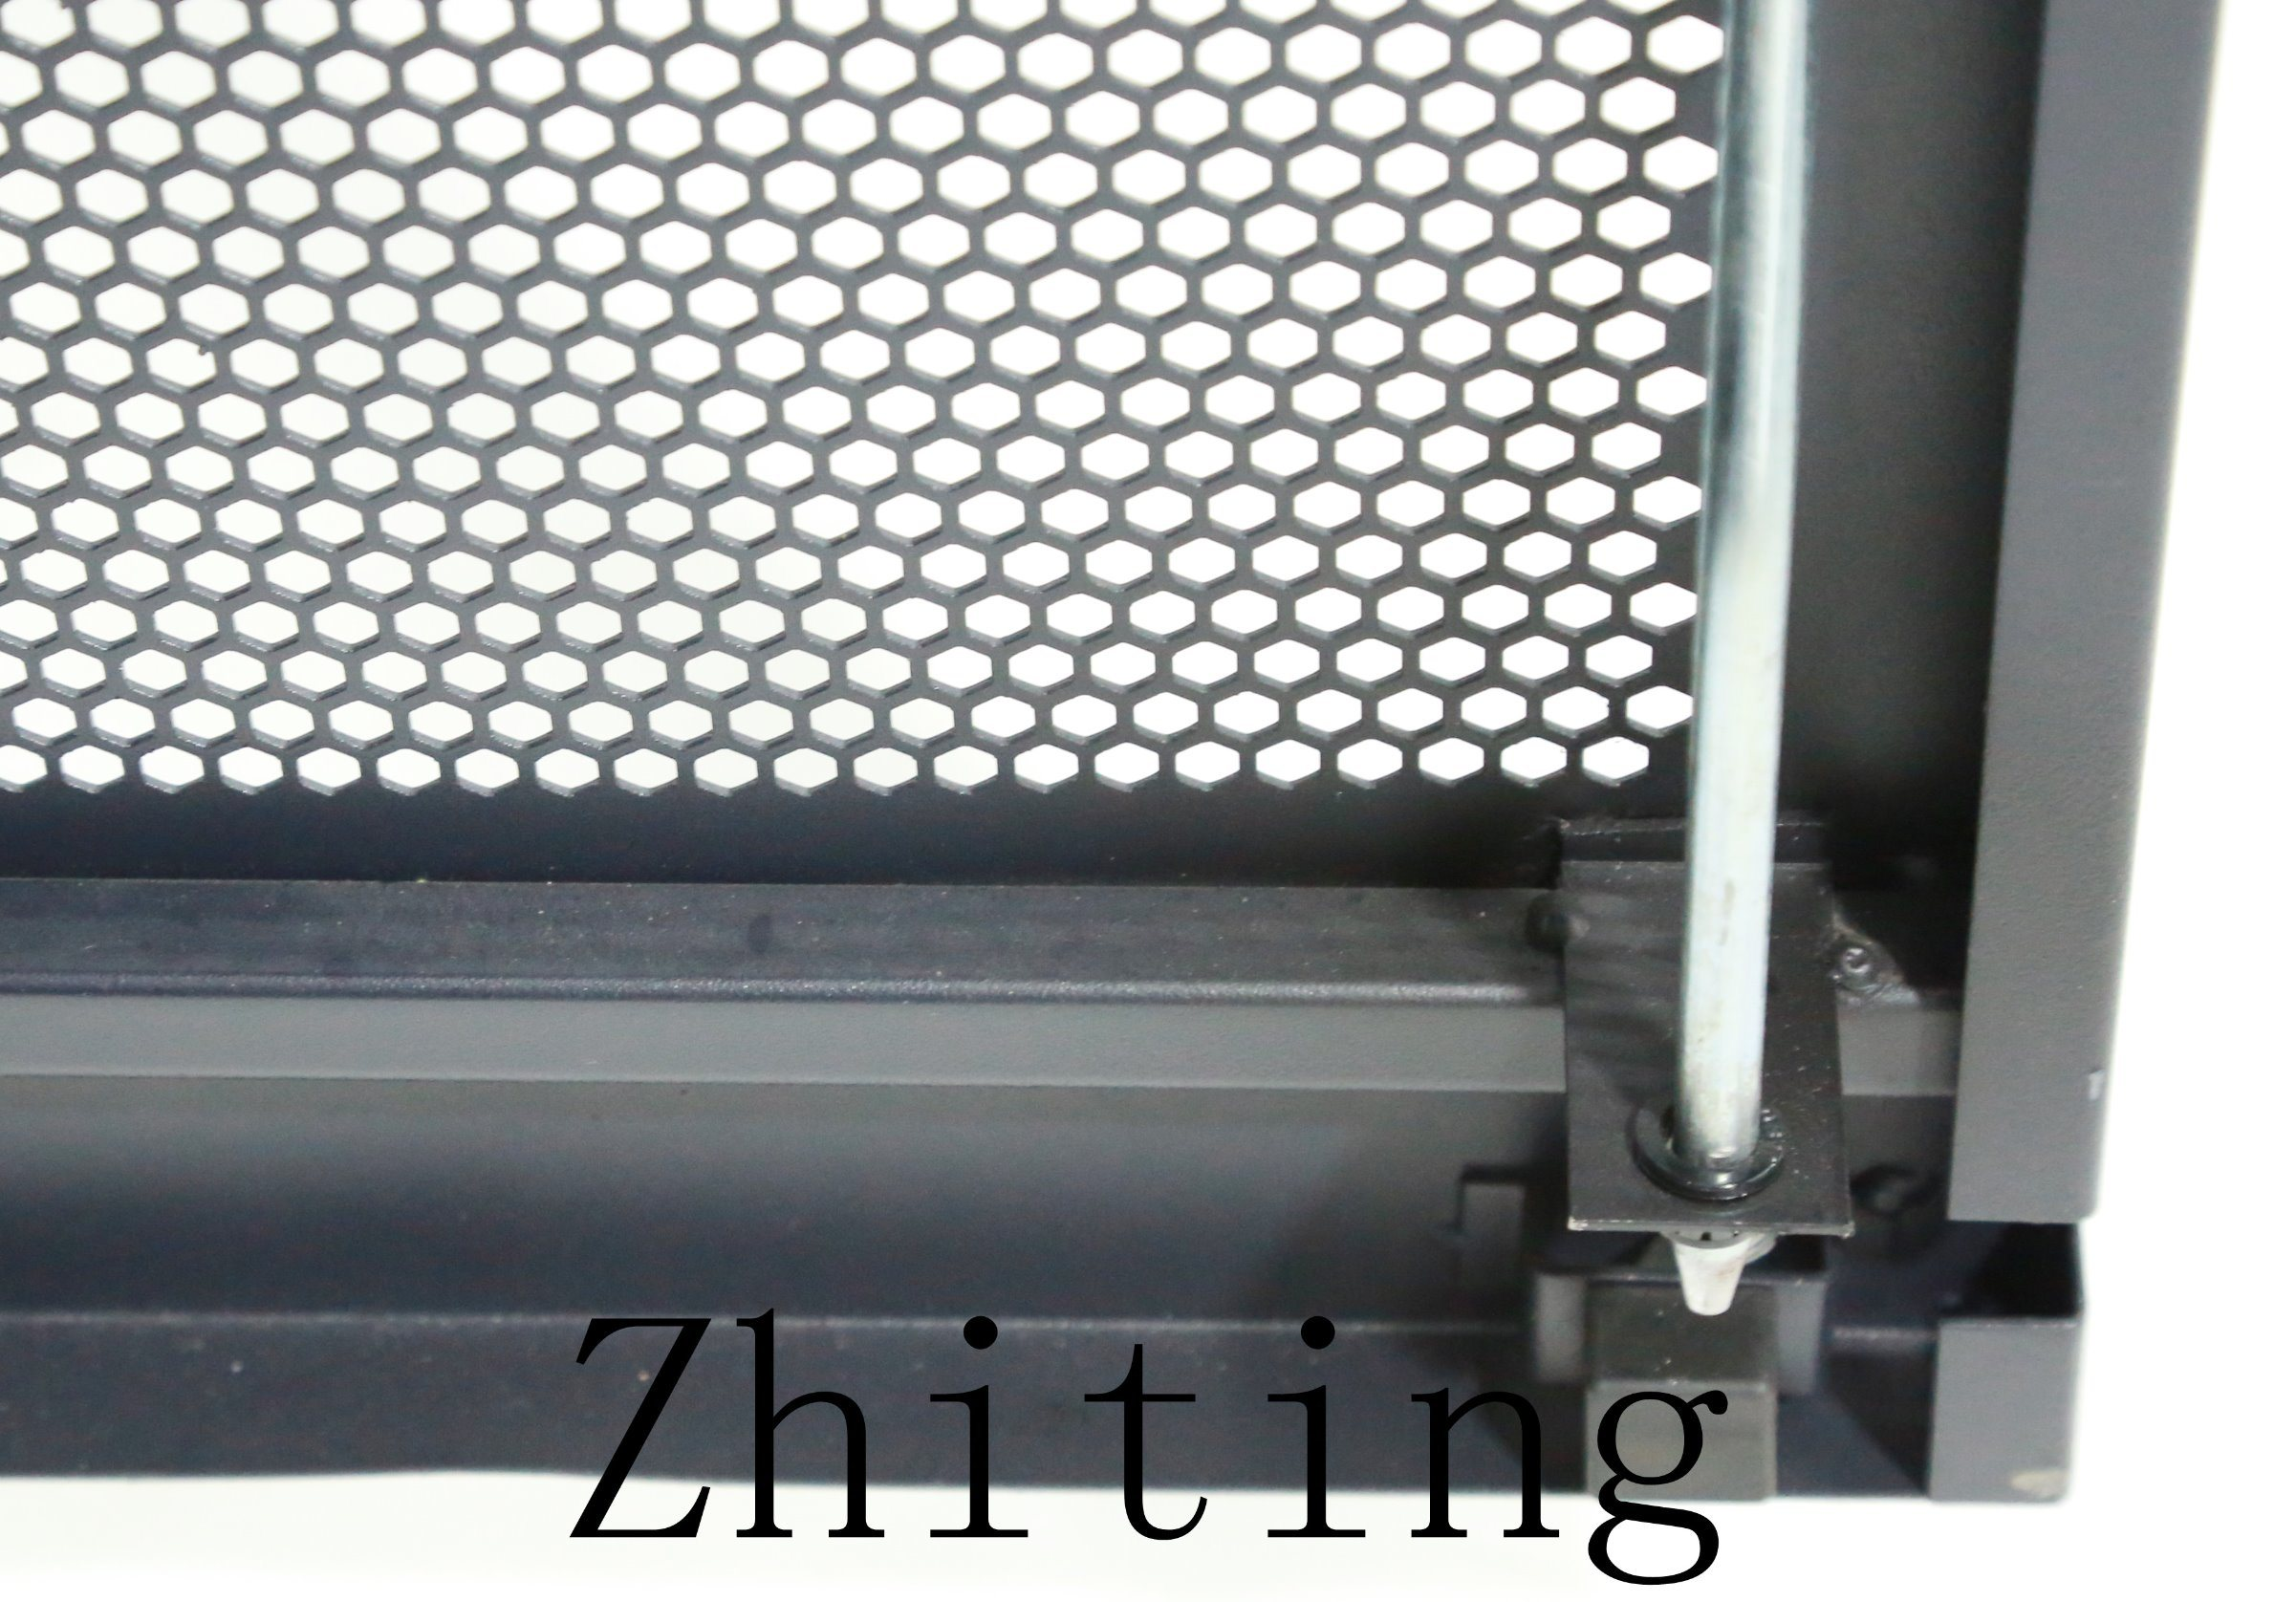 19 Inch Zt HS Series Server Network Cabinet Enclosures with Better Permanent Load